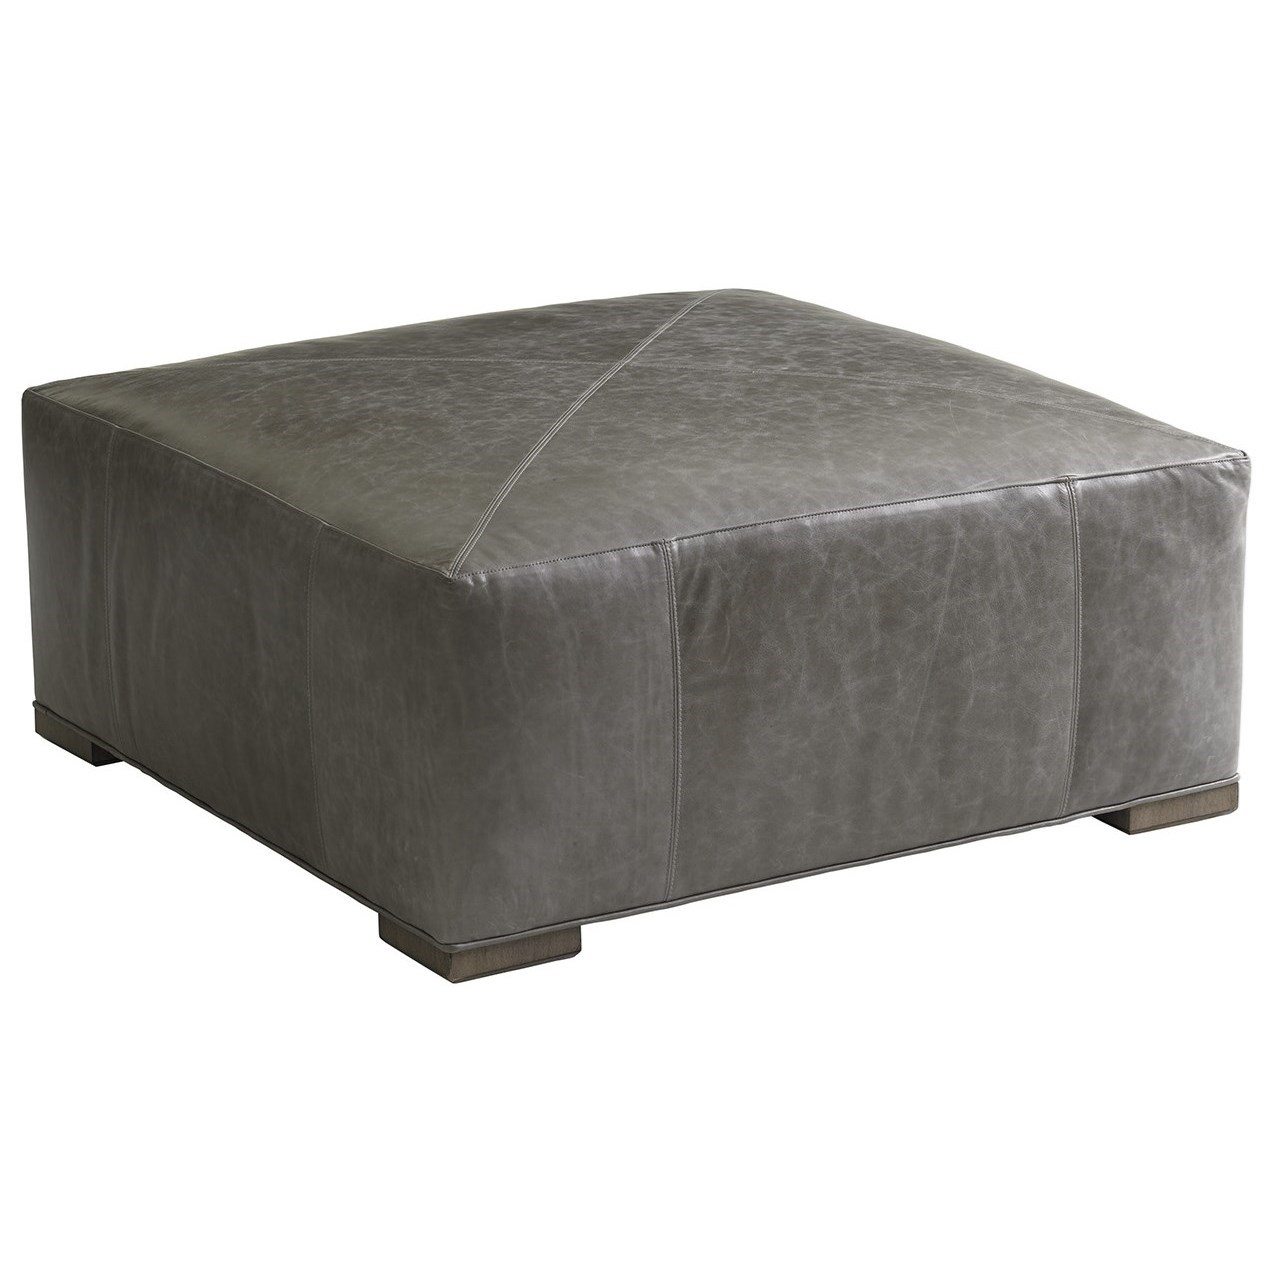 Lexington Shadow Play Melina Cocktail Ottoman - Item Number: LL7925-44-9628-71